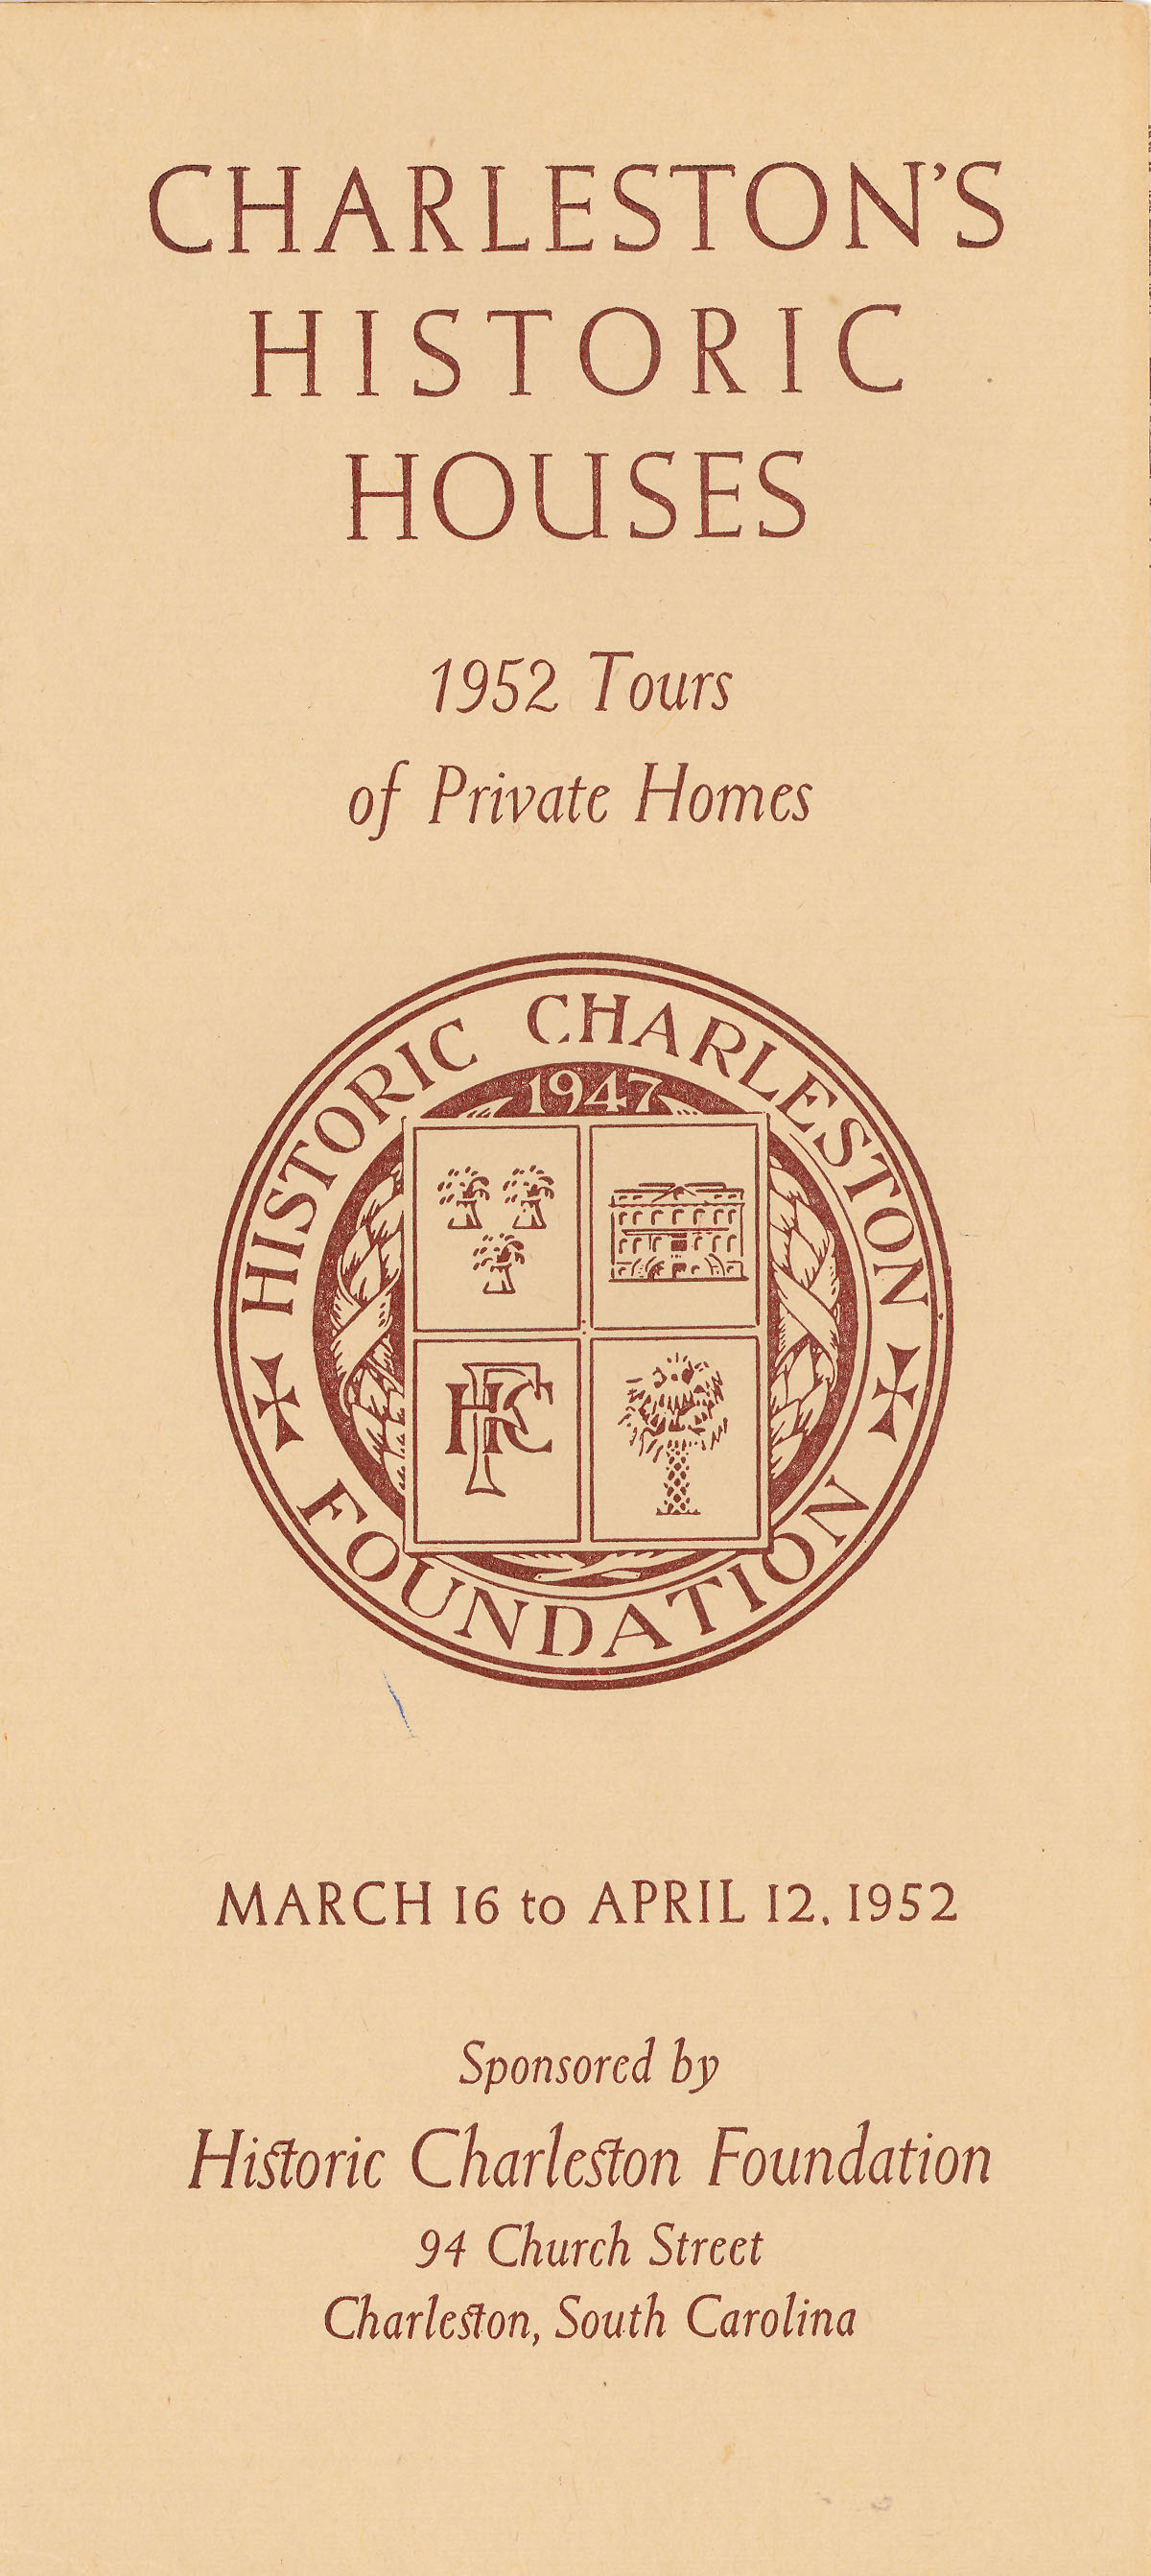 Charleston's Historic Houses, 1952:  Fifth Annual Tours Sponsored by Historic Charleston Foundation